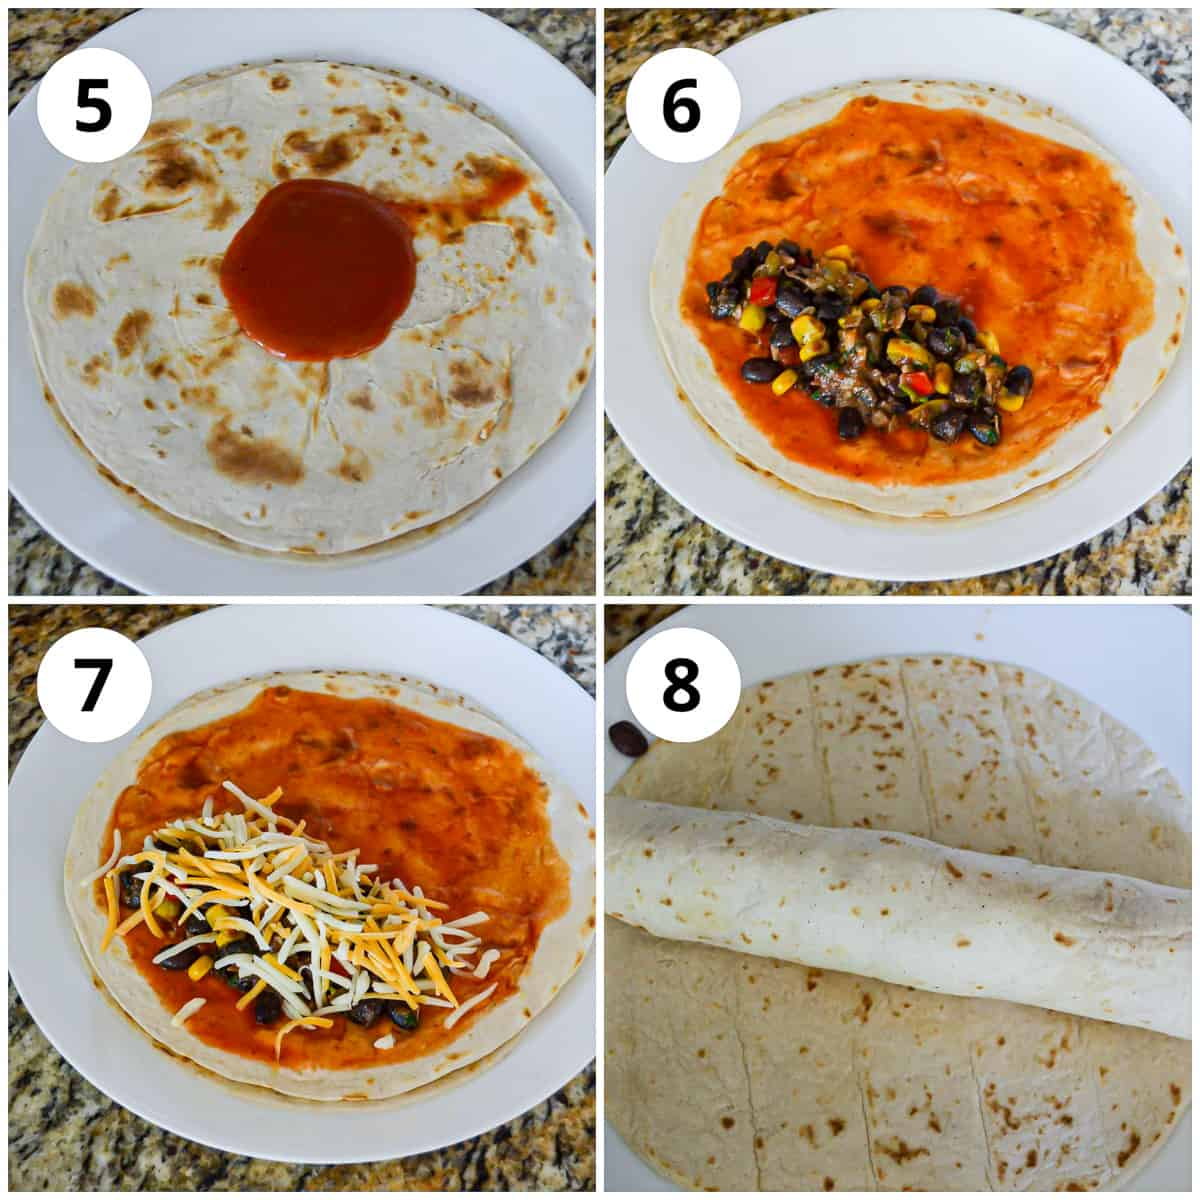 Four photos to show how to fill and roll the tortillas